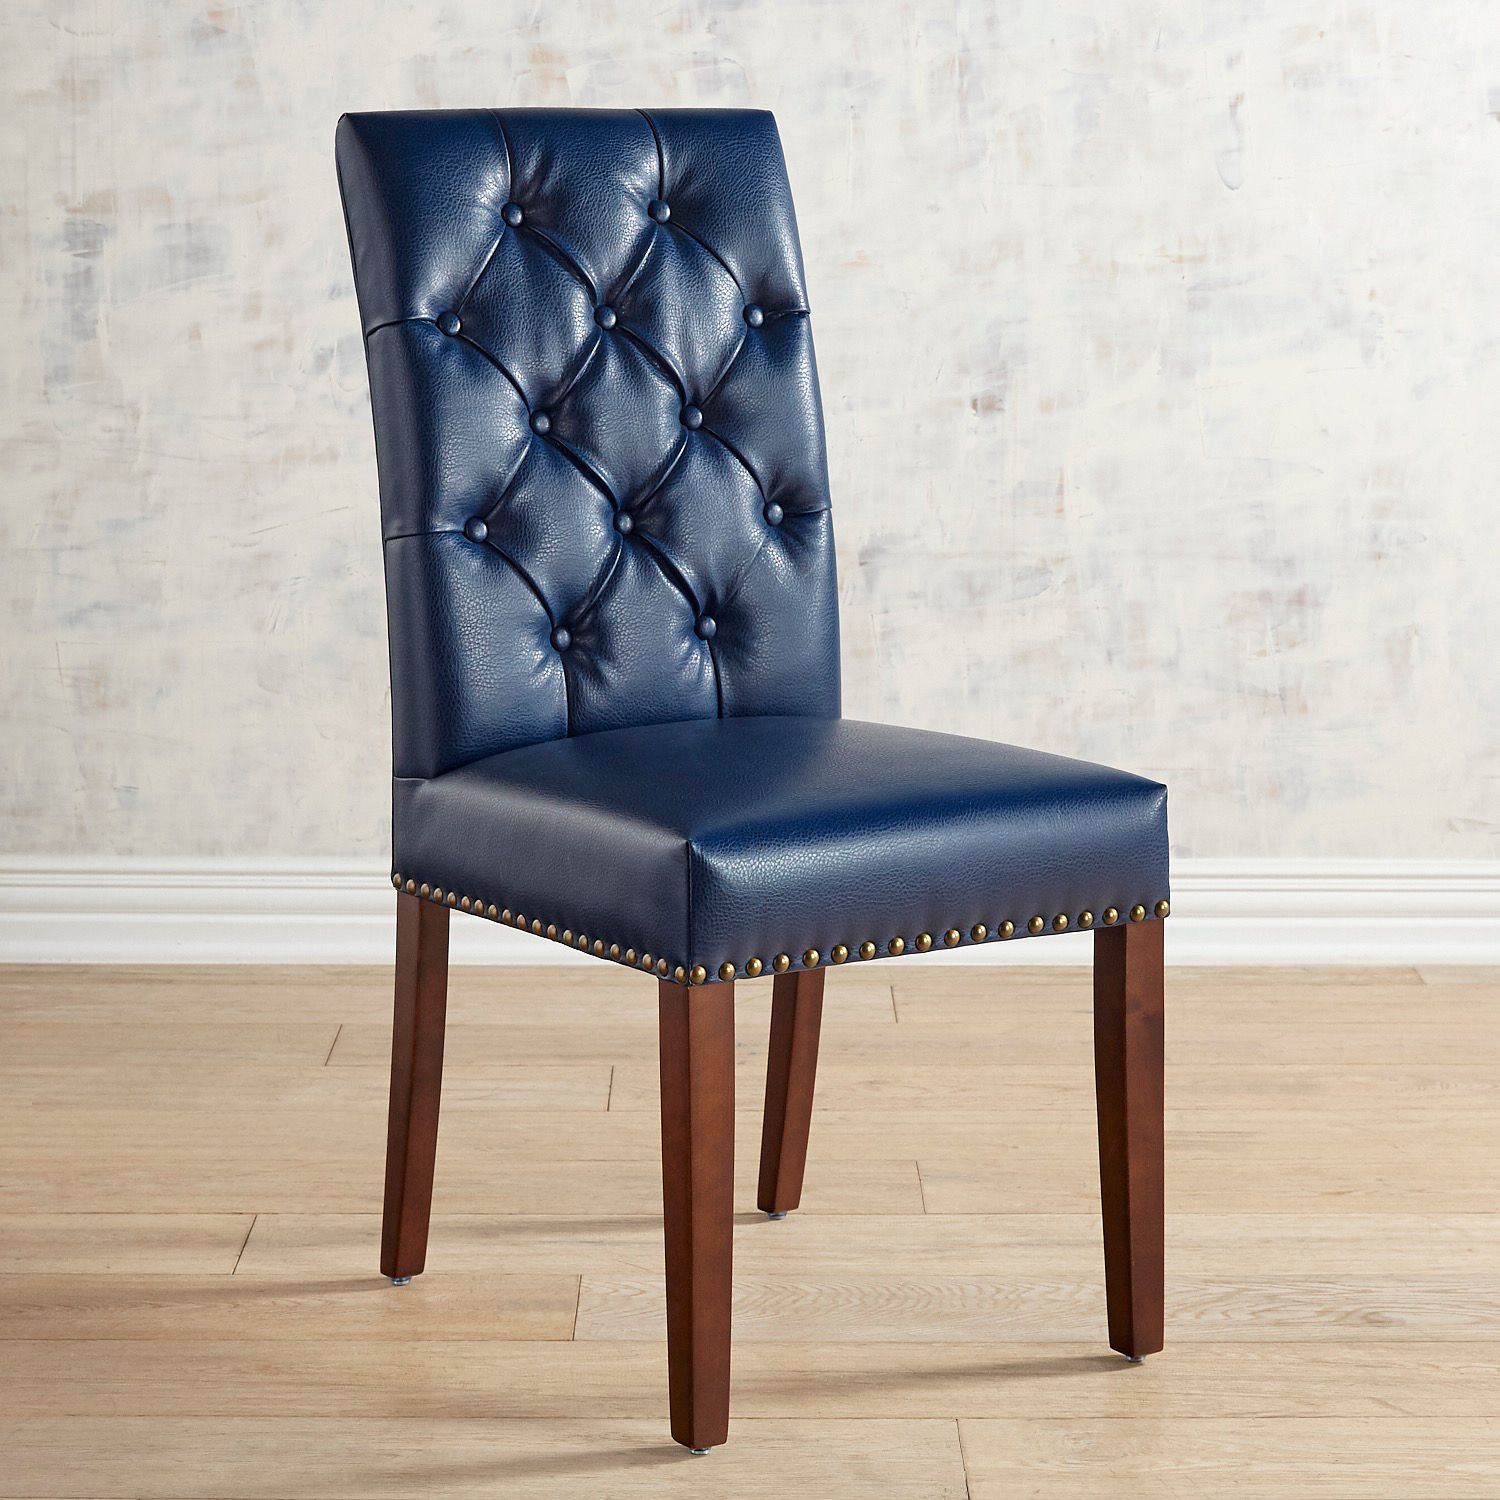 Hudson Navy Blue Vegan Leather Dining Chair With Walnut Brown Wood